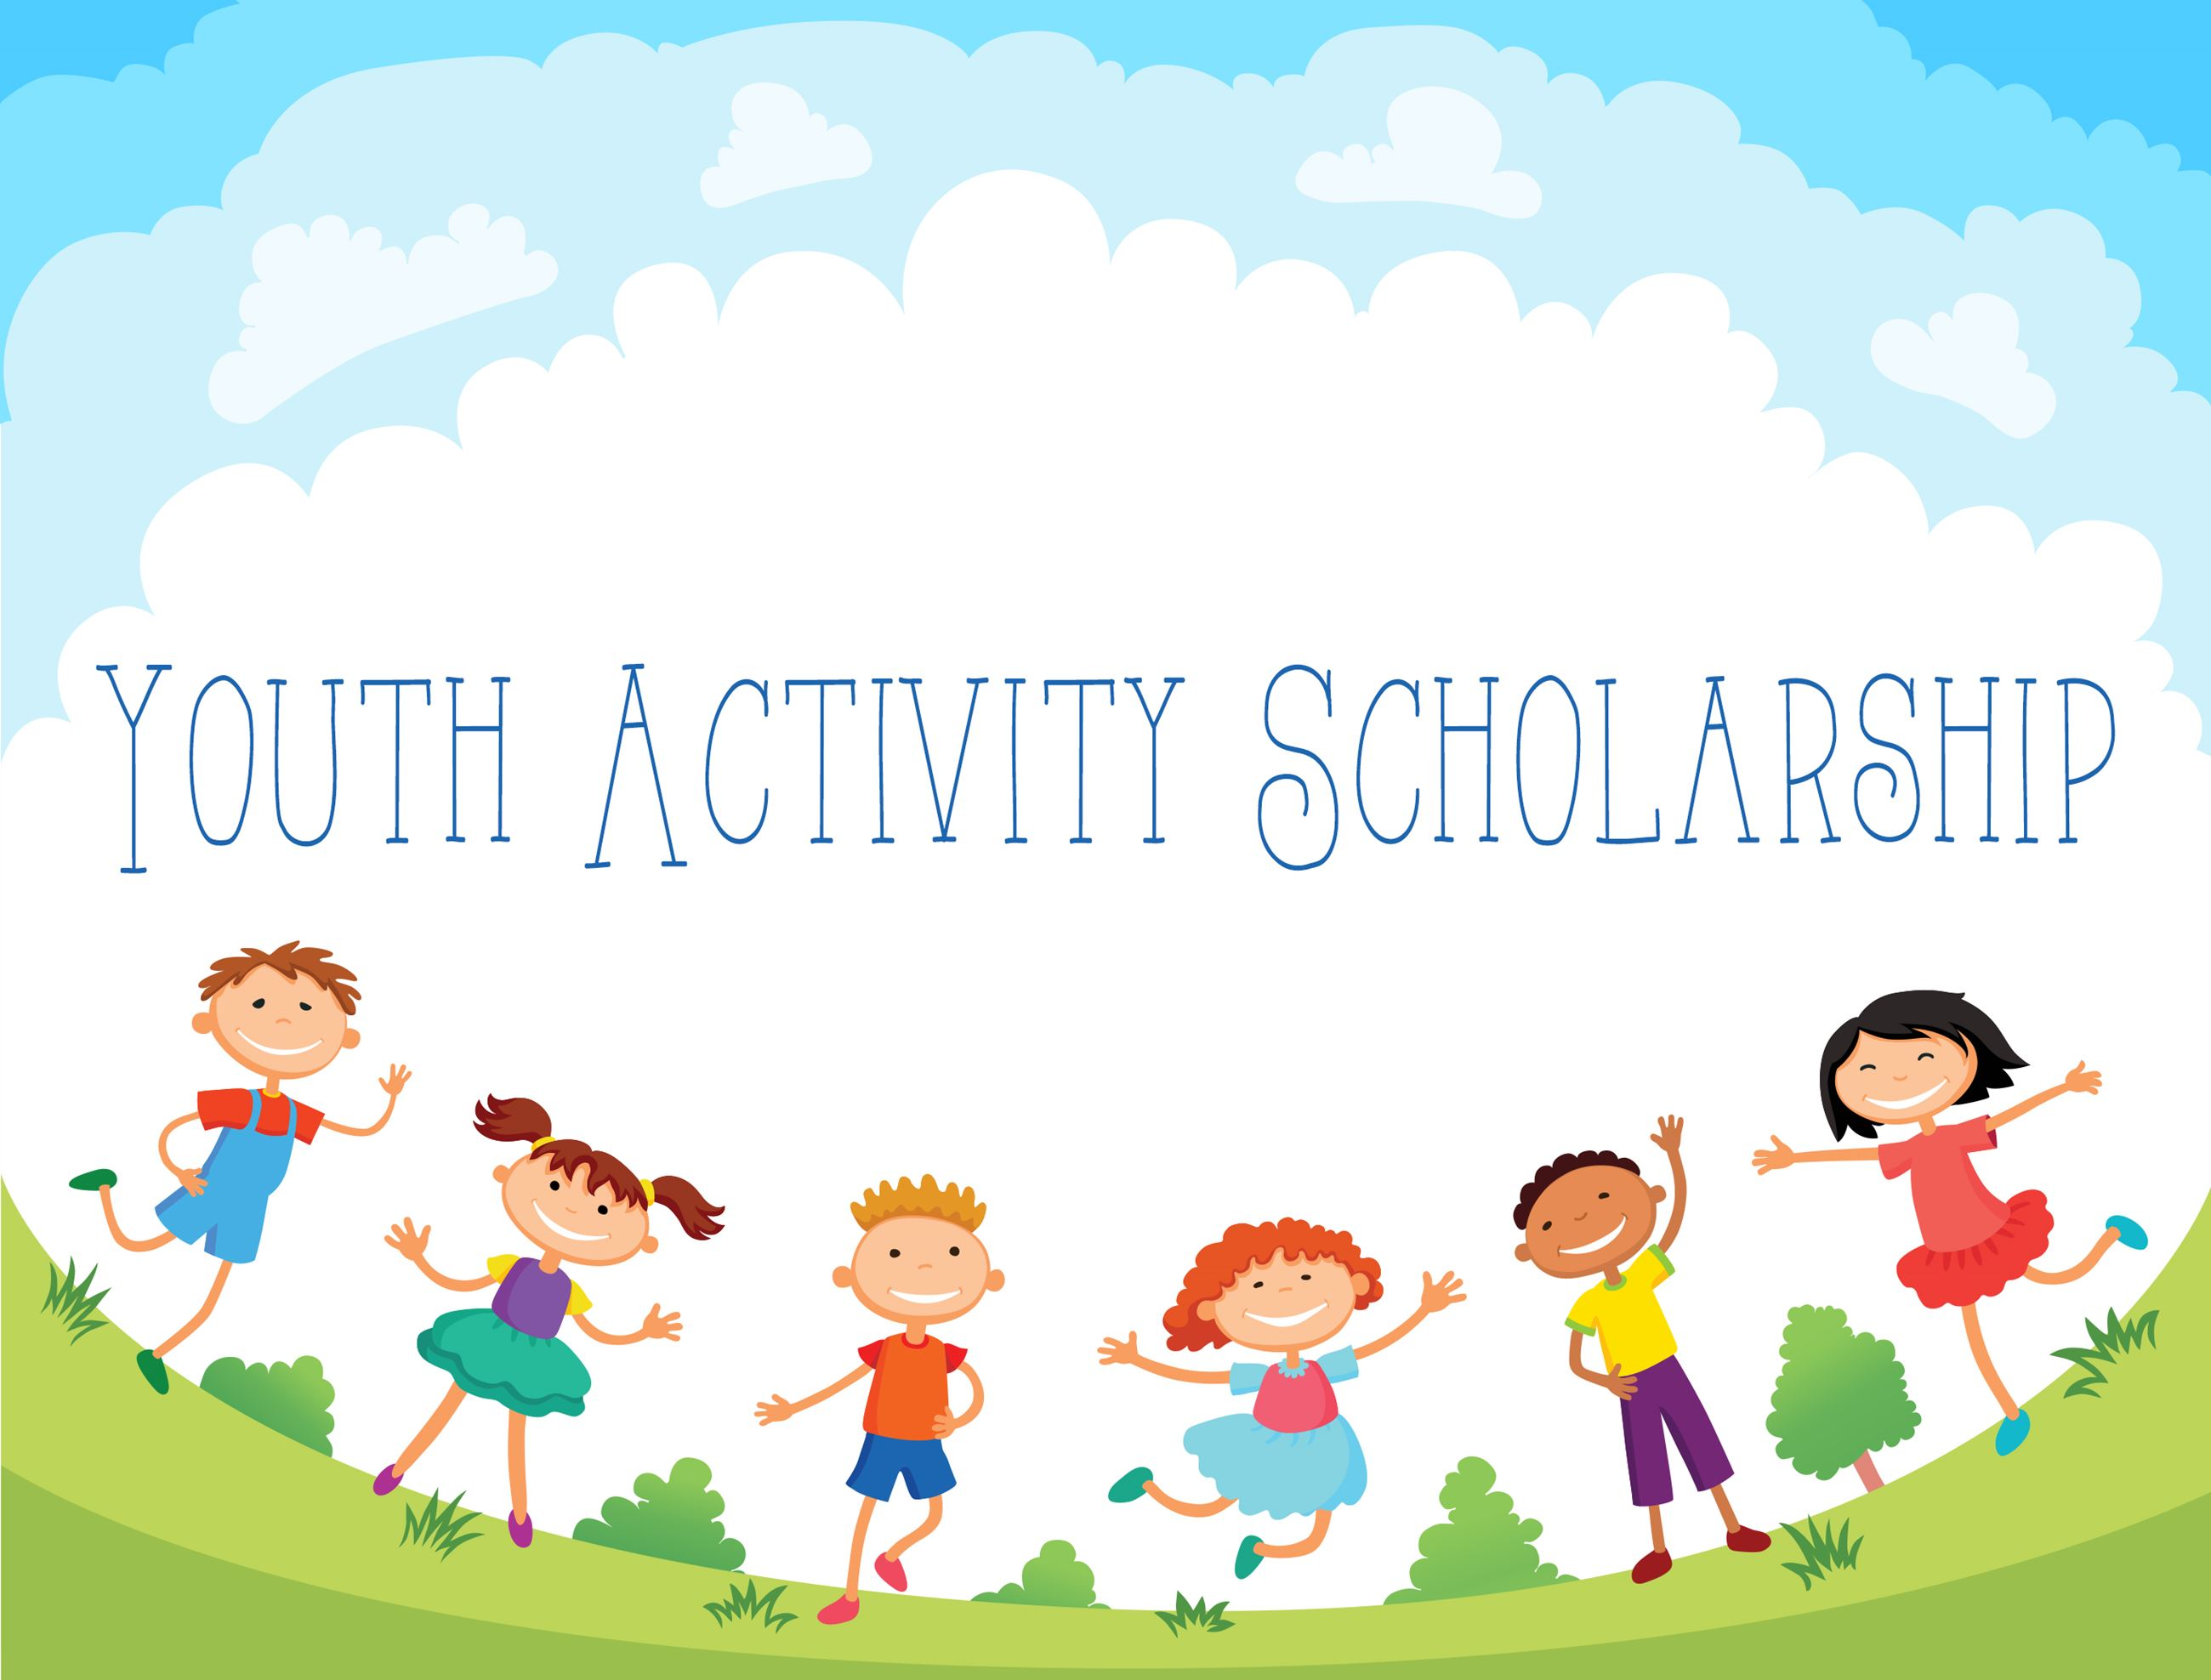 Youth Activity Scholarship image